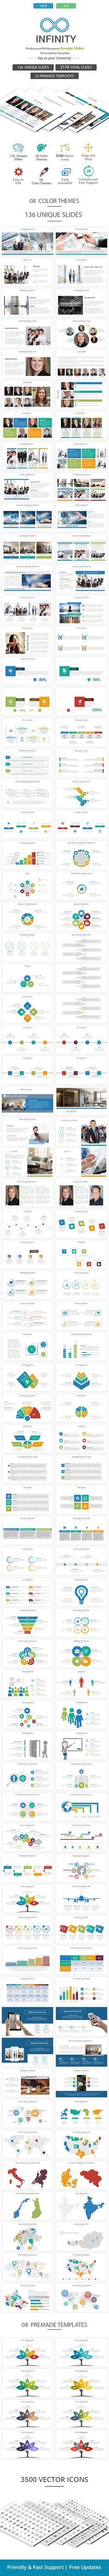 Infinity Google Slides  #Presentation Template - #Google #Slides Presentation #Templates Download here: https://graphicriver.net/item/infinity-google-slides-presentation-template/16429229?ref=alena994